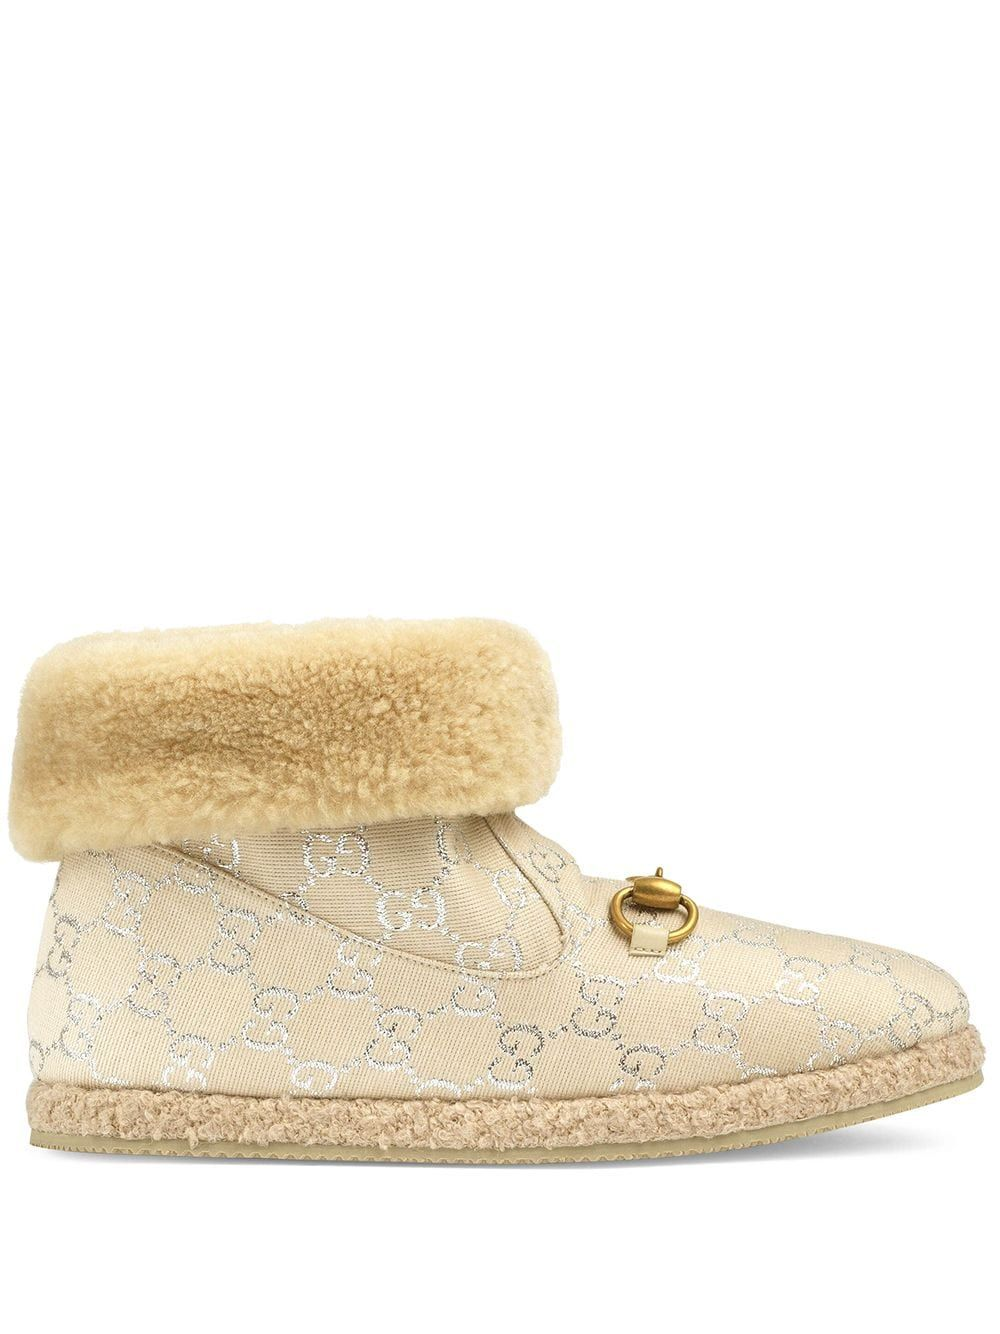 GUCCI GUCCI WOMEN'S WHITE WOOL ANKLE BOOTS